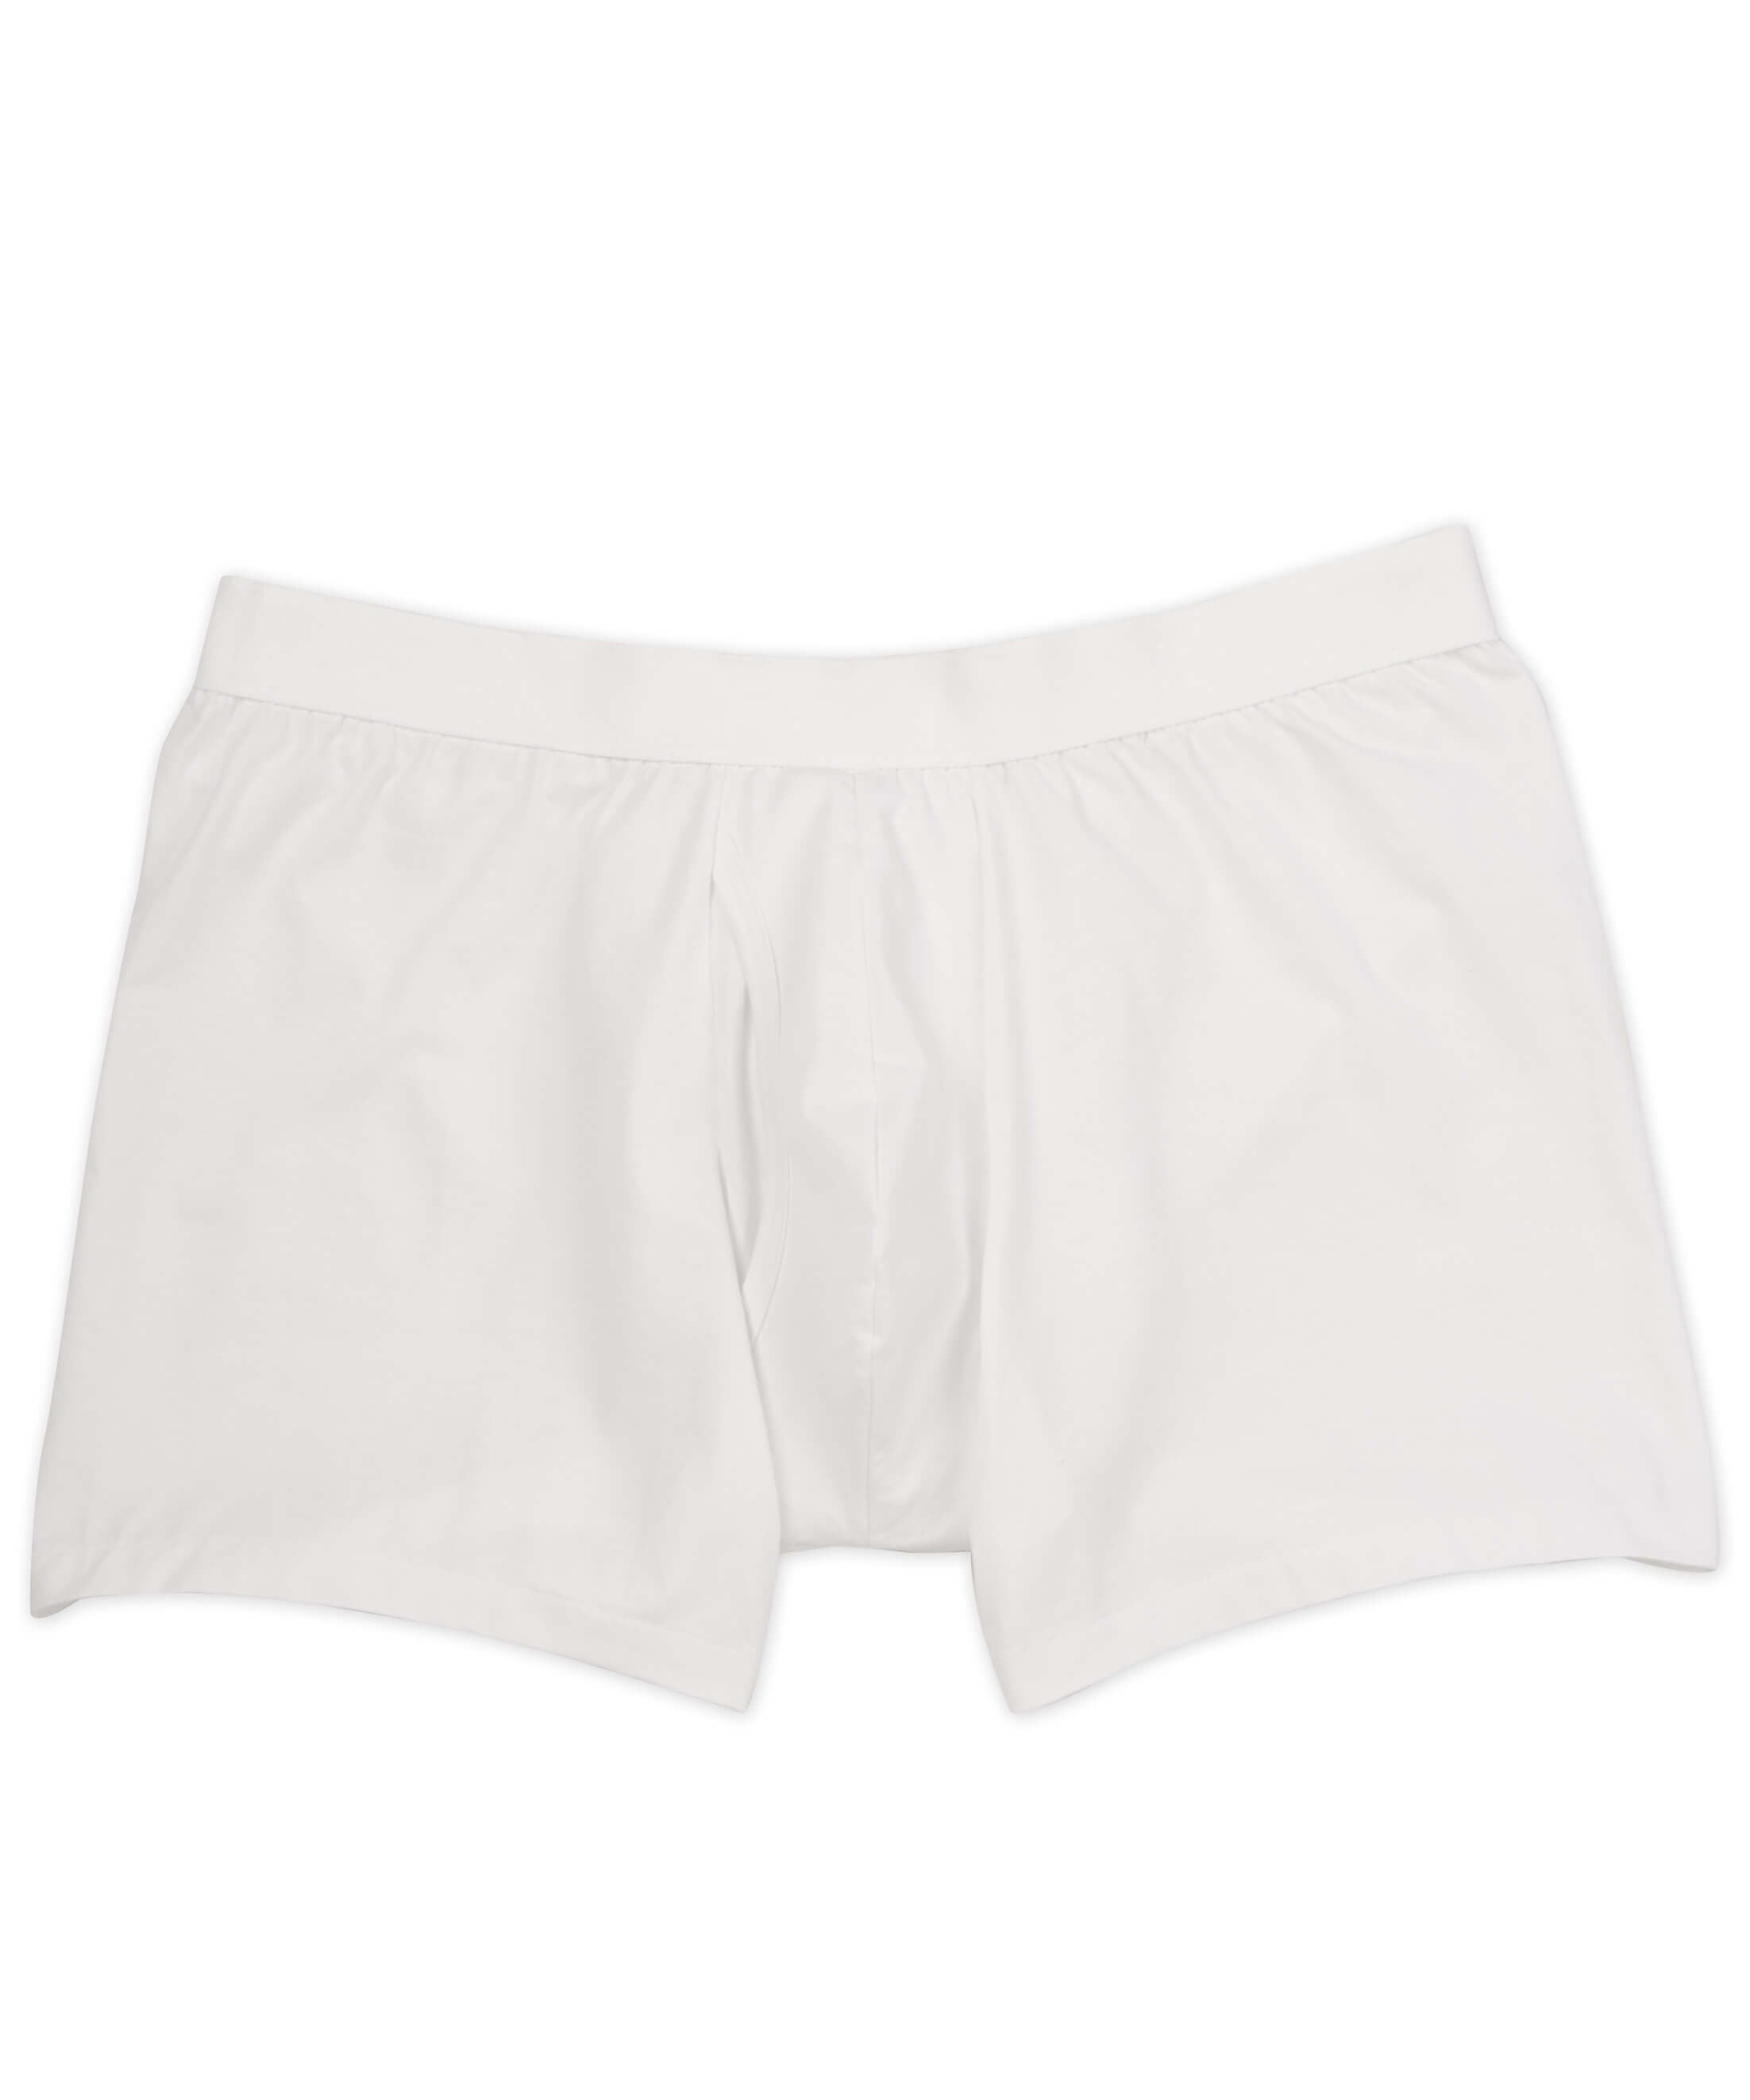 Derek Rose Pima Cotton Stretch Trunk Boxer